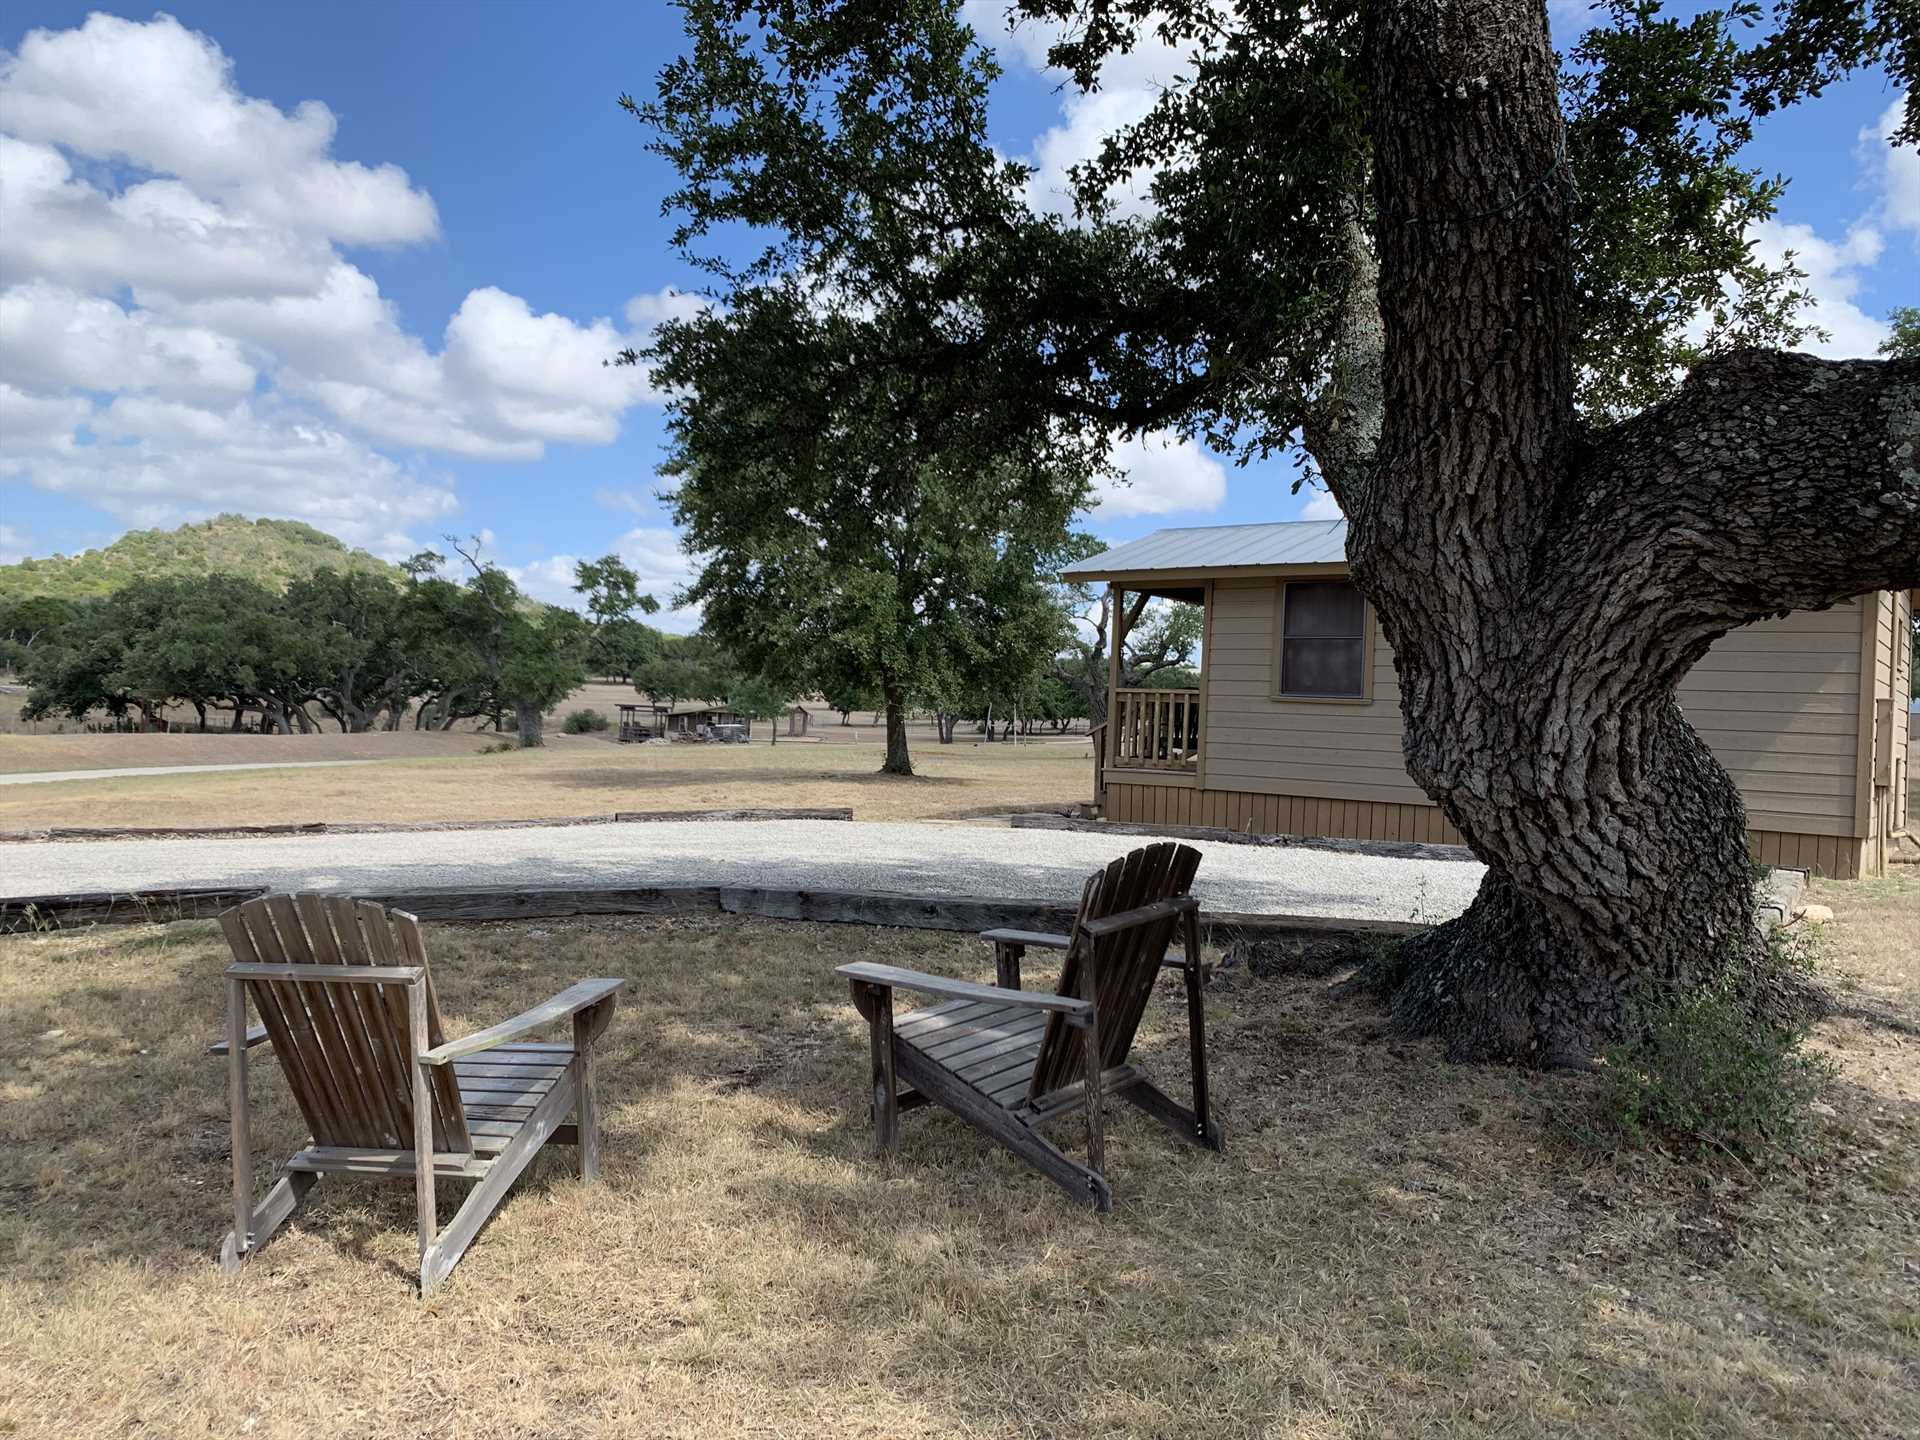 Have yourself a relaxing sit-down under the shady oak in the comfy Adirondack chairs, and savor the Hill Country views and fresh air!